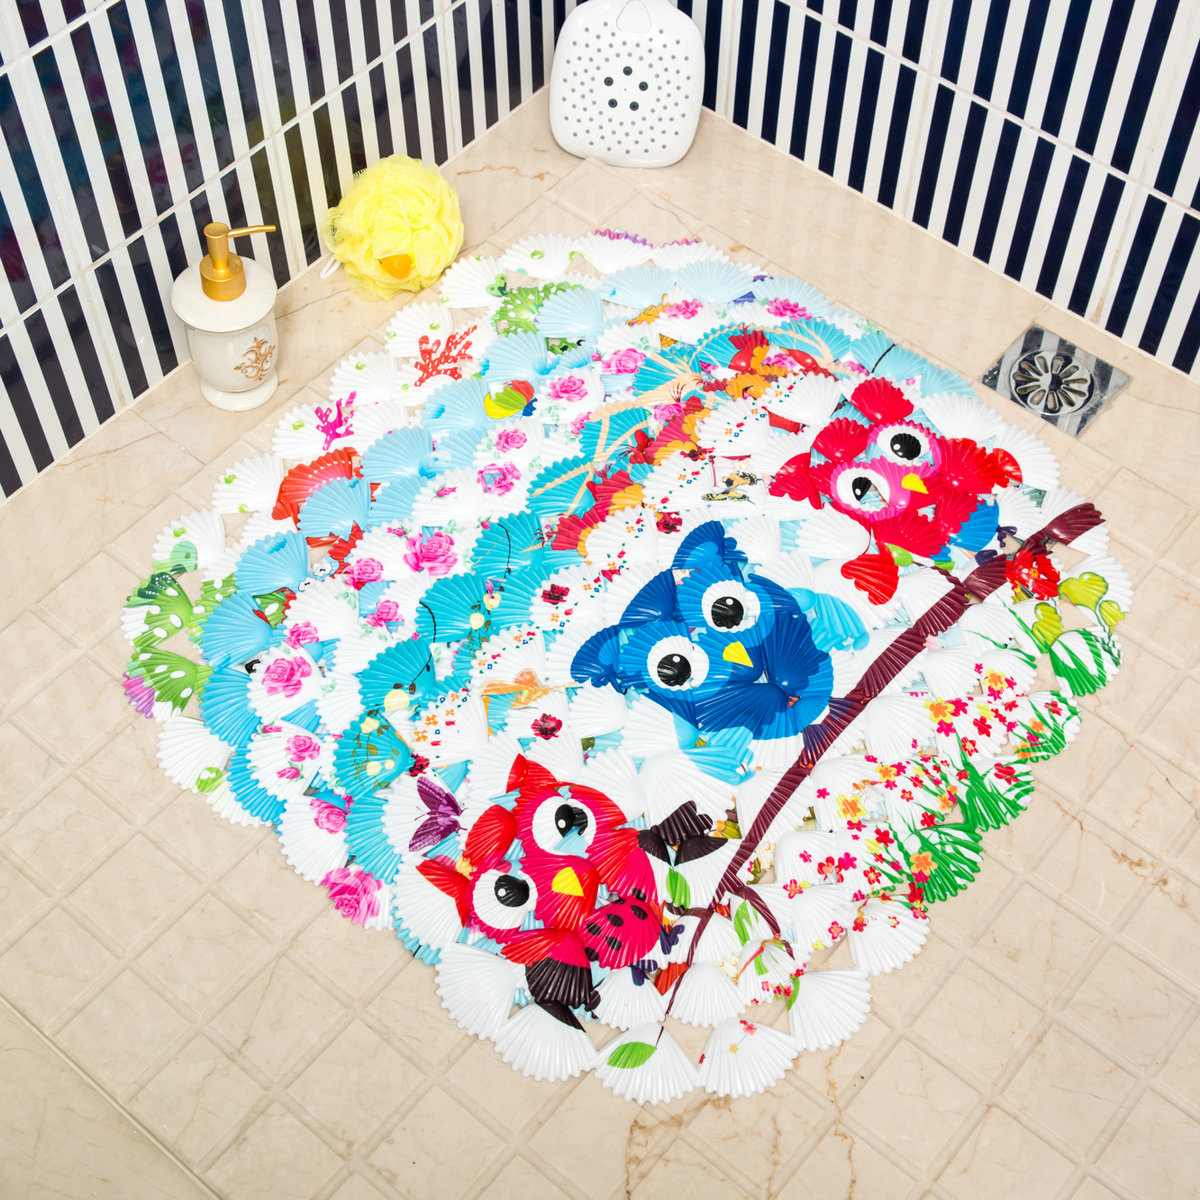 Non Slip Shower Mats Seashell Bath Tub Safety Mat Rubber Suction Cup 15 X 27inch